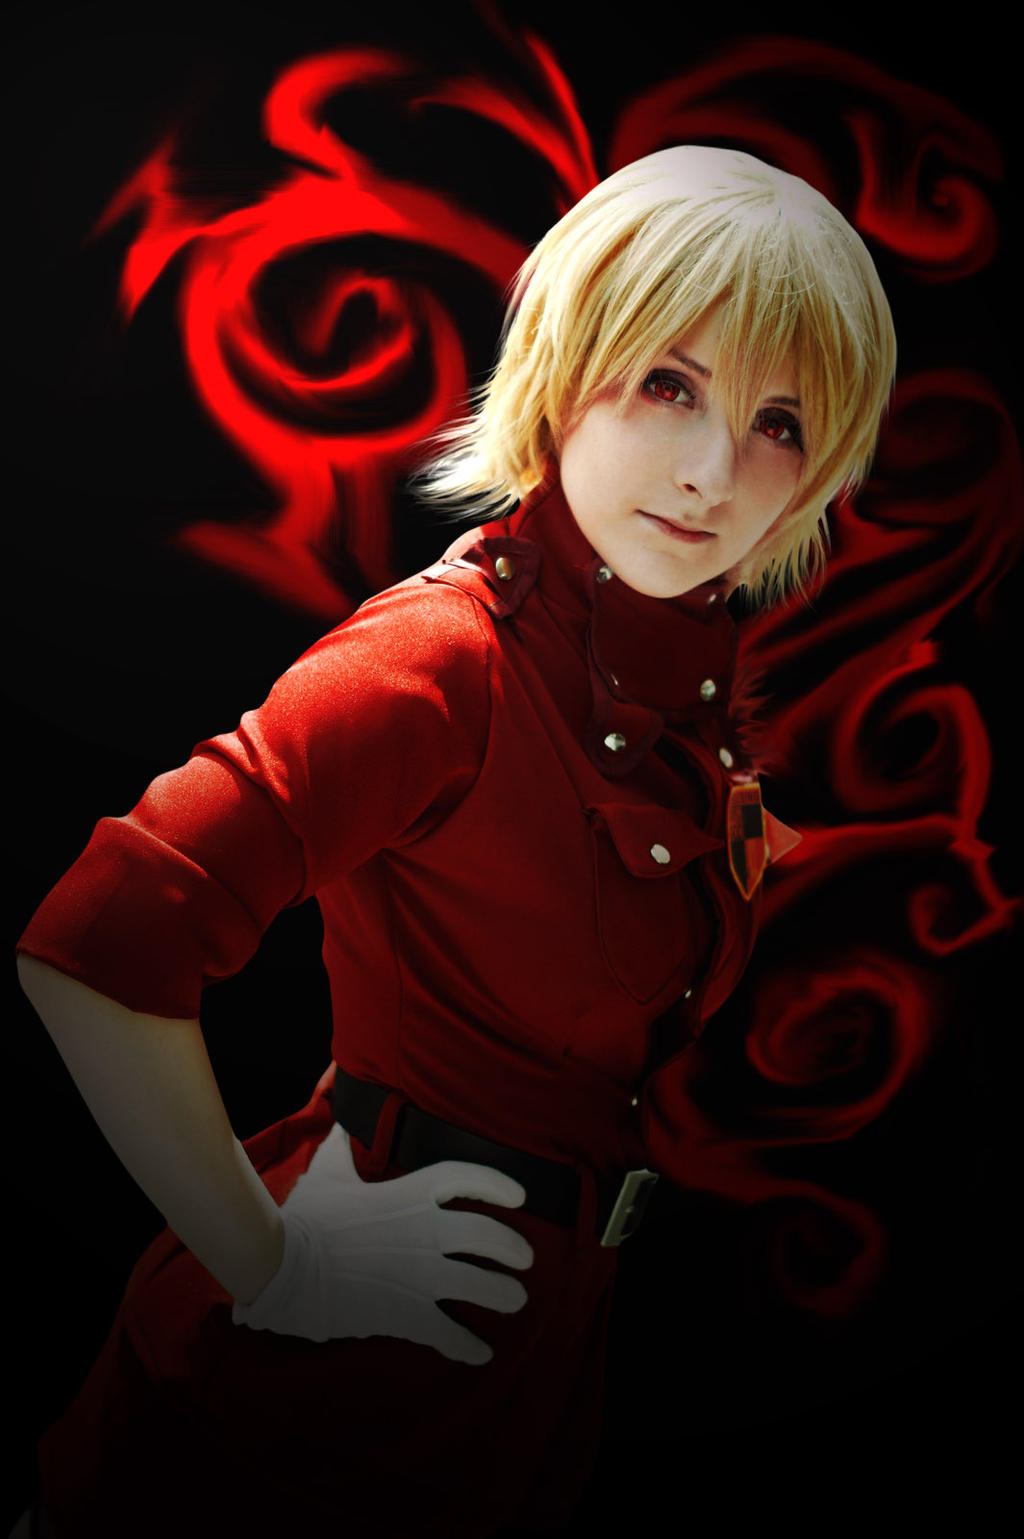 Seras Victoria Blood Rage by xXPhoenixfeatherXx on DeviantArt